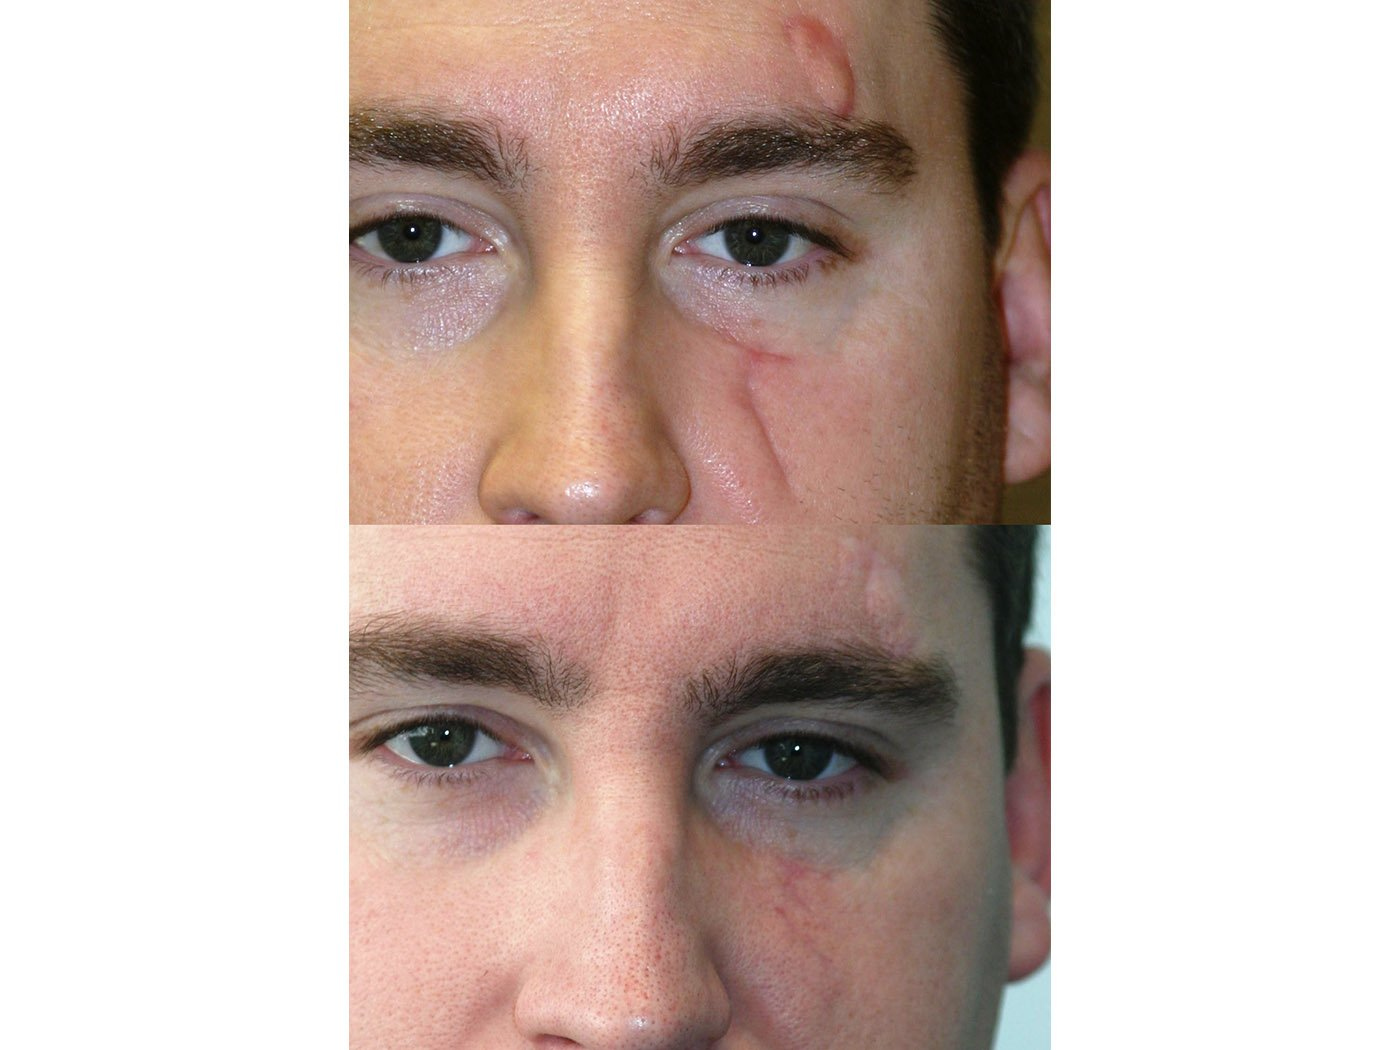 Z-plasty scar revision 6 months after surgery front view